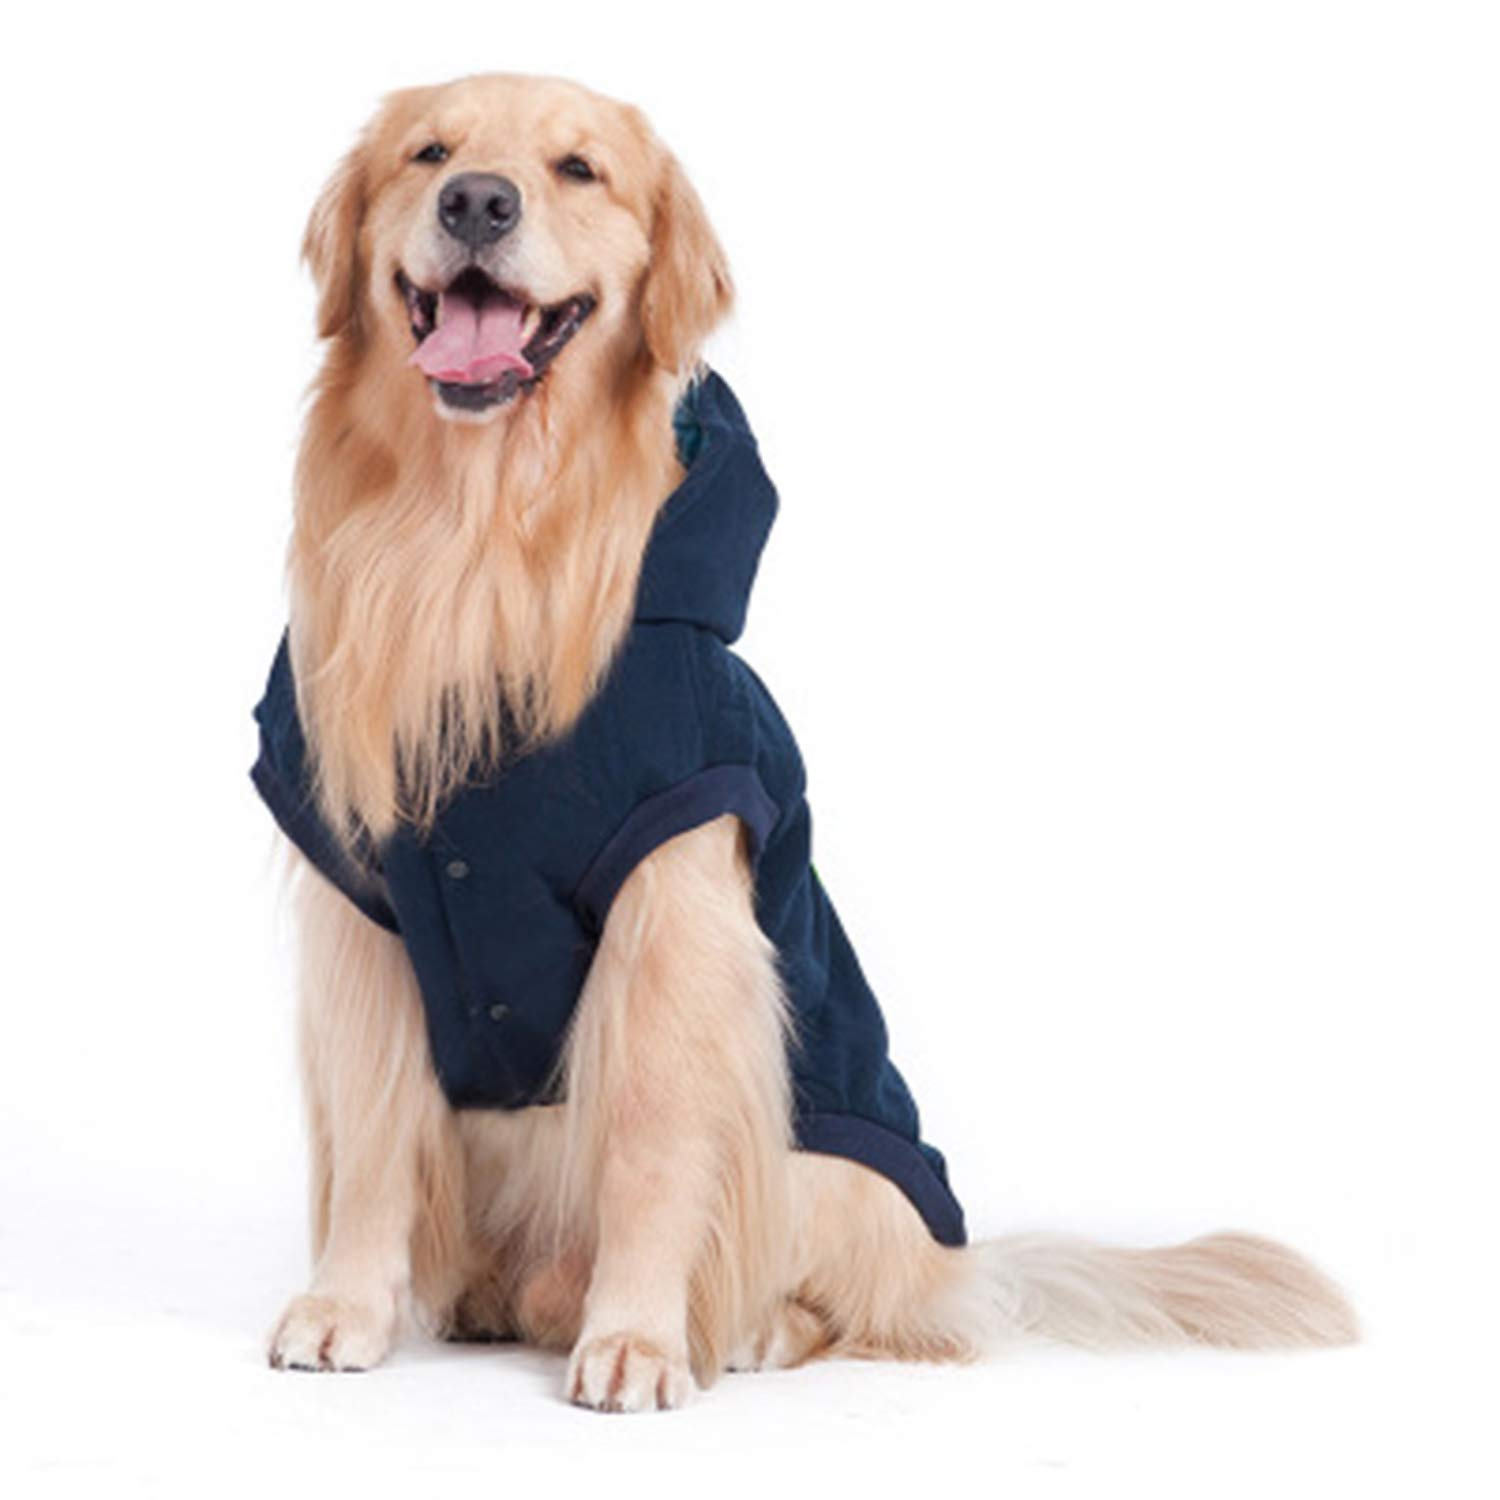 bluee 5XL bluee 5XL Dog Clothes Big Dog Autumn and Winter Clothing Medium and Large Dogs golden Retriever Husky Samoyed Pet Clothing